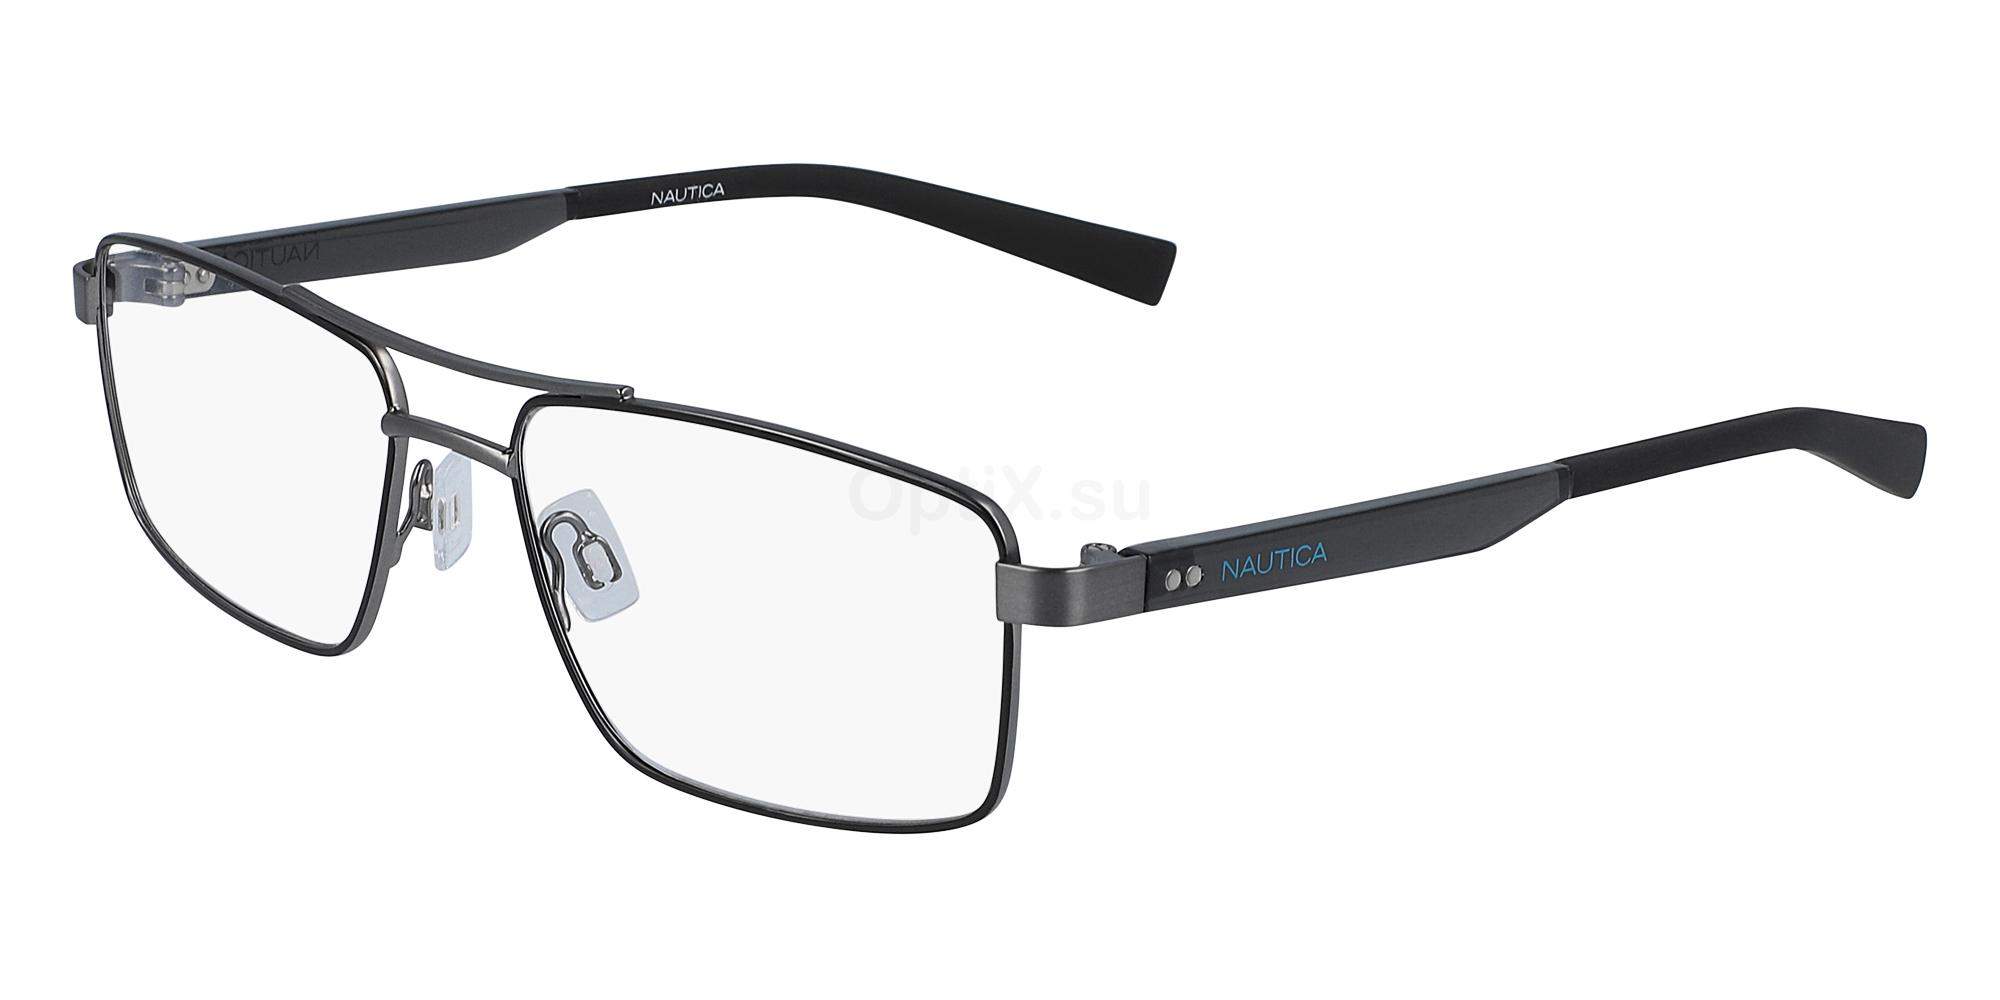 001 N8144 Glasses, Nautica